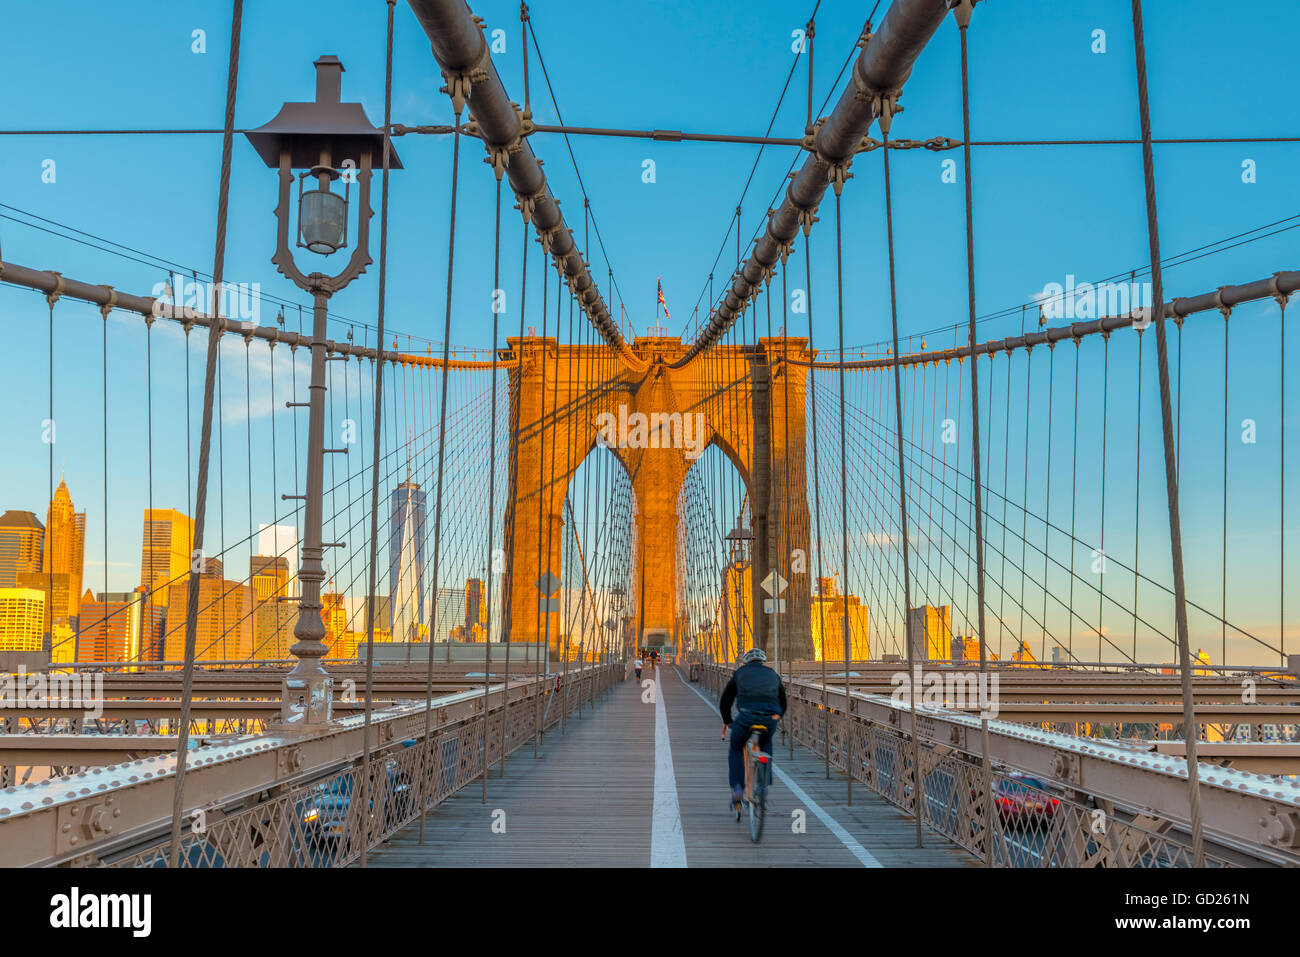 Manhattan, Brooklyn Bridge over East River, Lower Manhattan skyline, inc Freedom Tower of World Trade Center, New - Stock Image